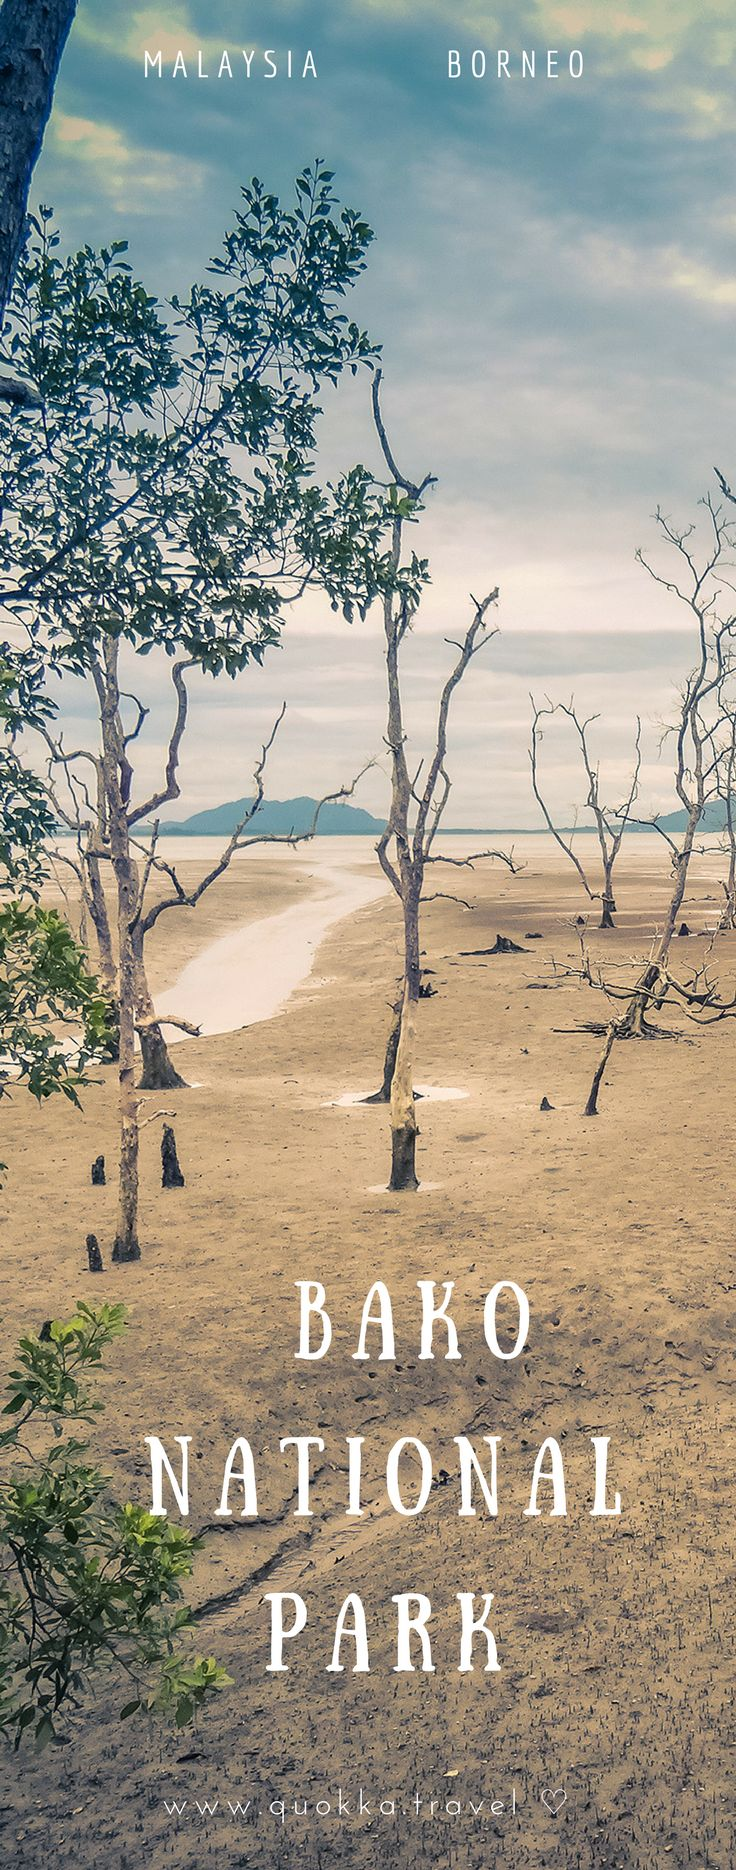 Bako National Park is established in 1957 and covers about 27 square kilometres. This makes Bako one of the smallest national parks of Sarawak on Borneo. The park is conveniently located, just 40 km from Kuching – the capital of Sarawak. It is definitely worth spending at least one day at Bako National Park, not in the first place to spot the famous proboscis monkeys! Check our out travel tips to have the perfect Bako experience.